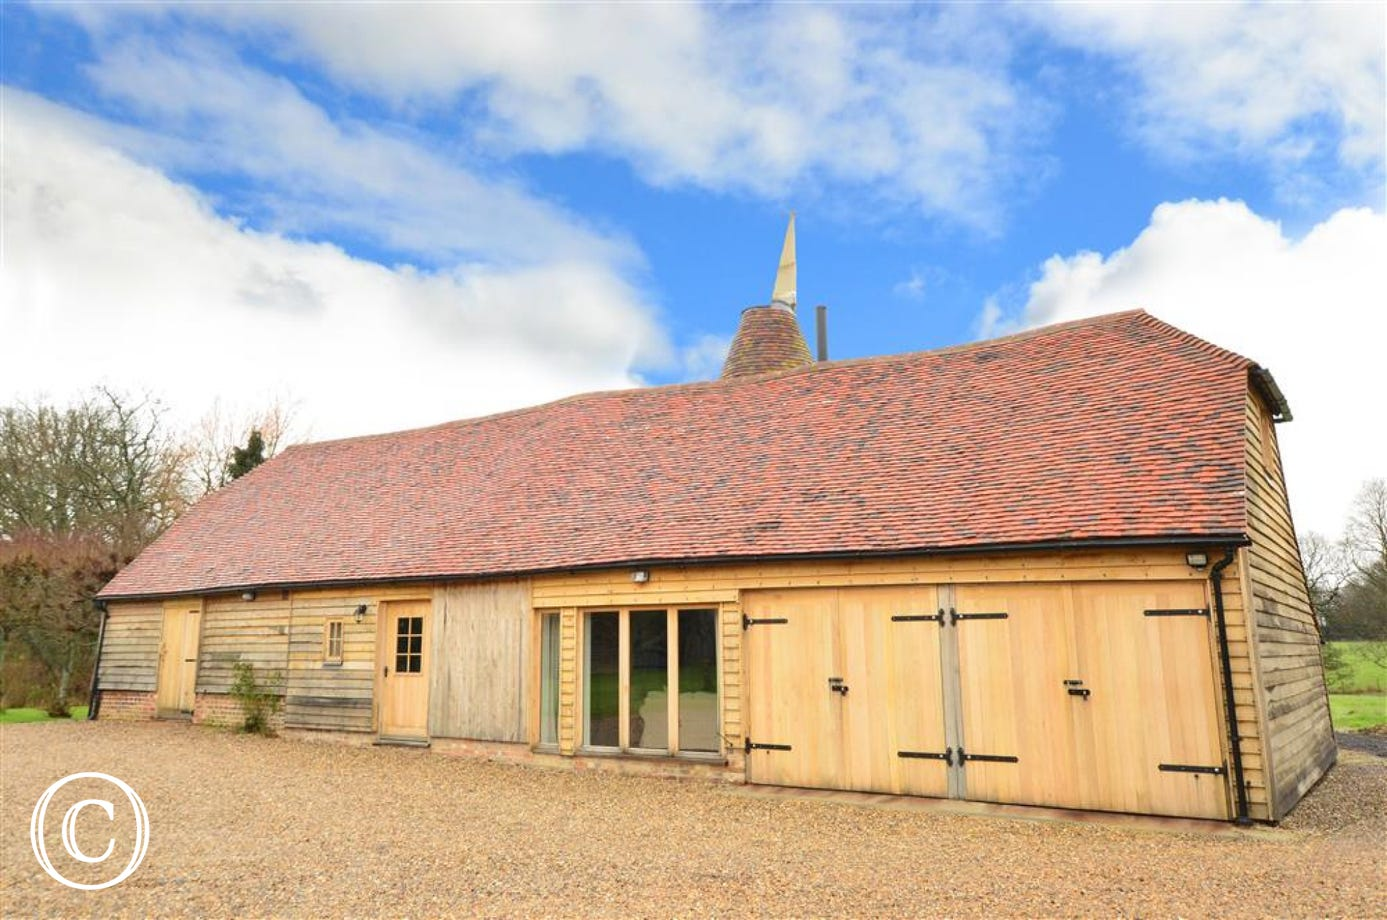 Stunning oast house conversion in grounds of an ancient Manor House